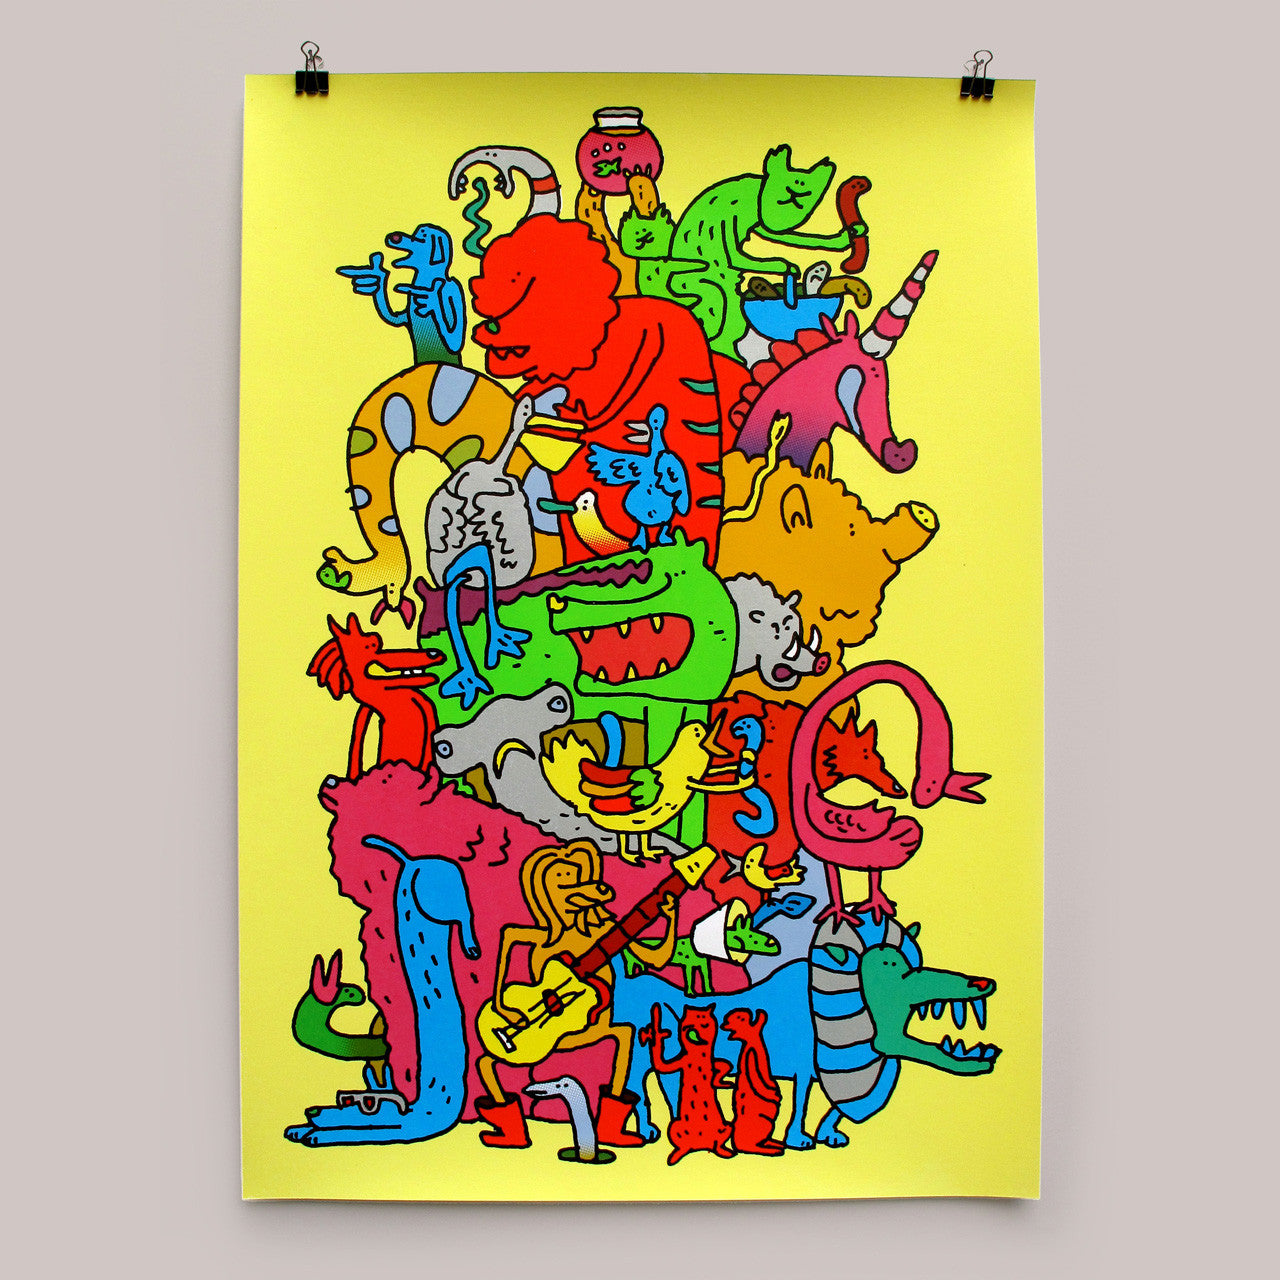 Pile Up print by Andy Smith